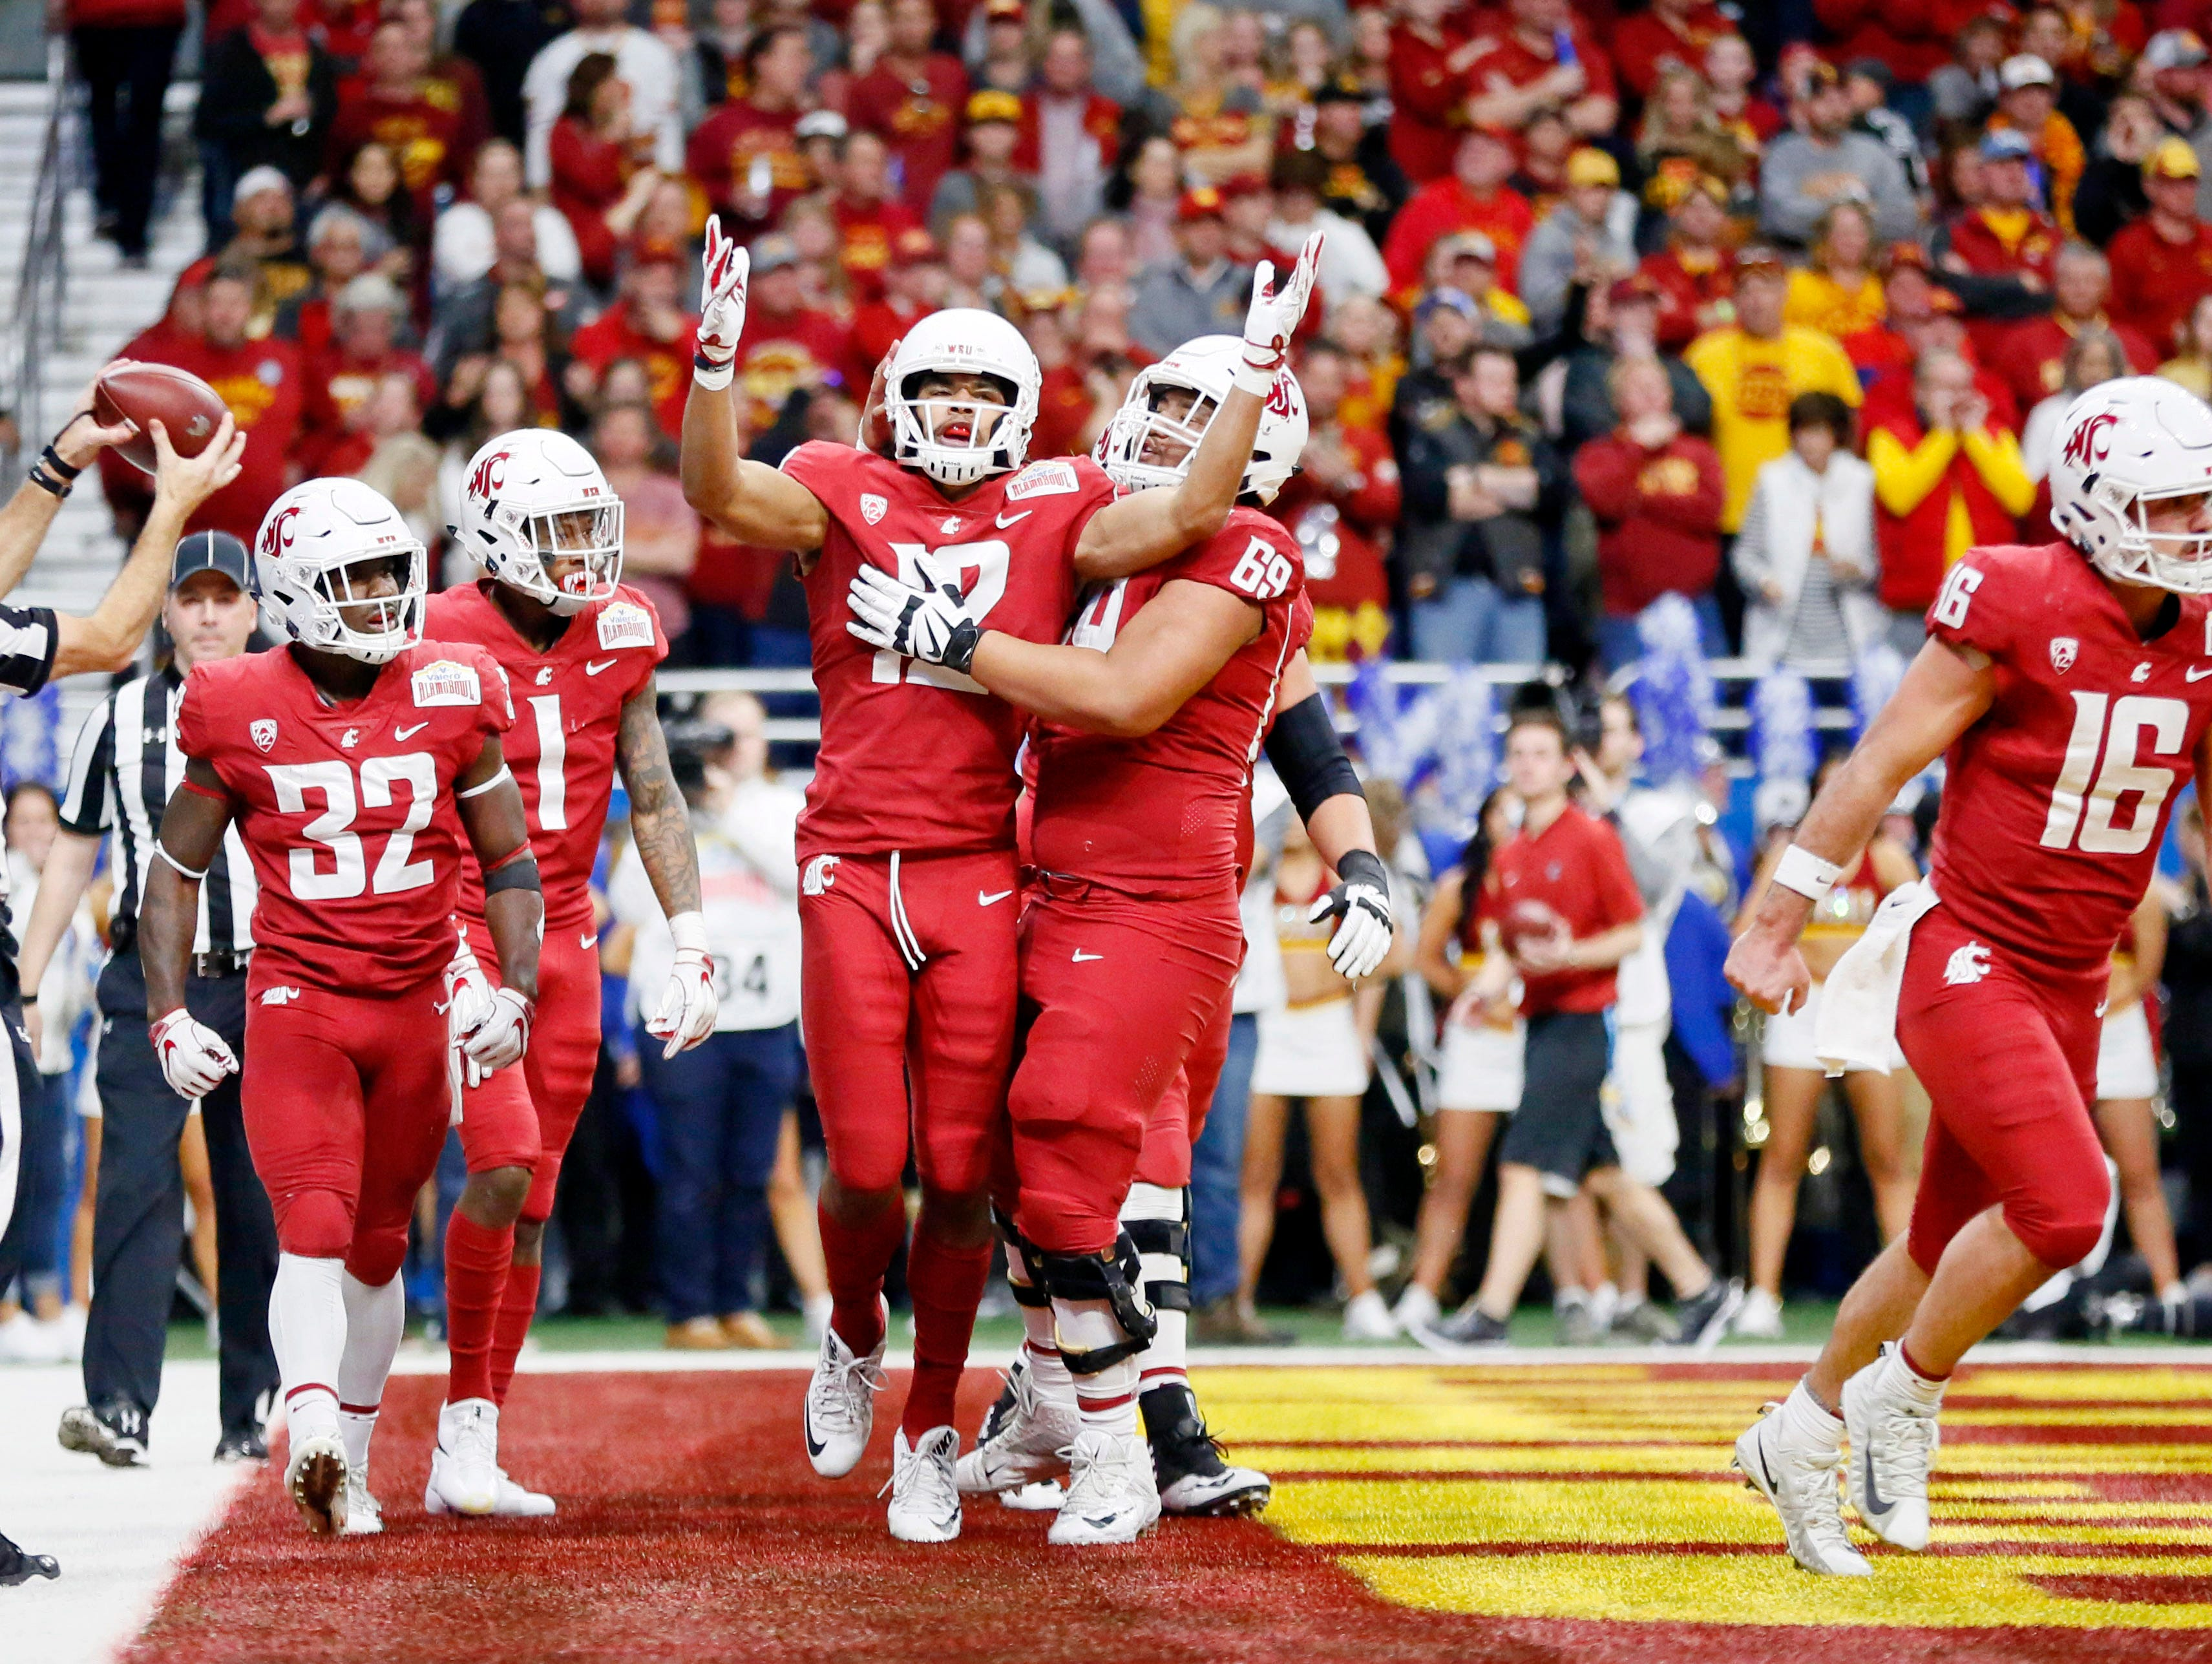 Washington State Cougars wide receiver Dezmon Patmon (12) celebrates with teammates after scoring a touchdown during the first half against the Iowa State Cyclones in the Alamo Bowl.